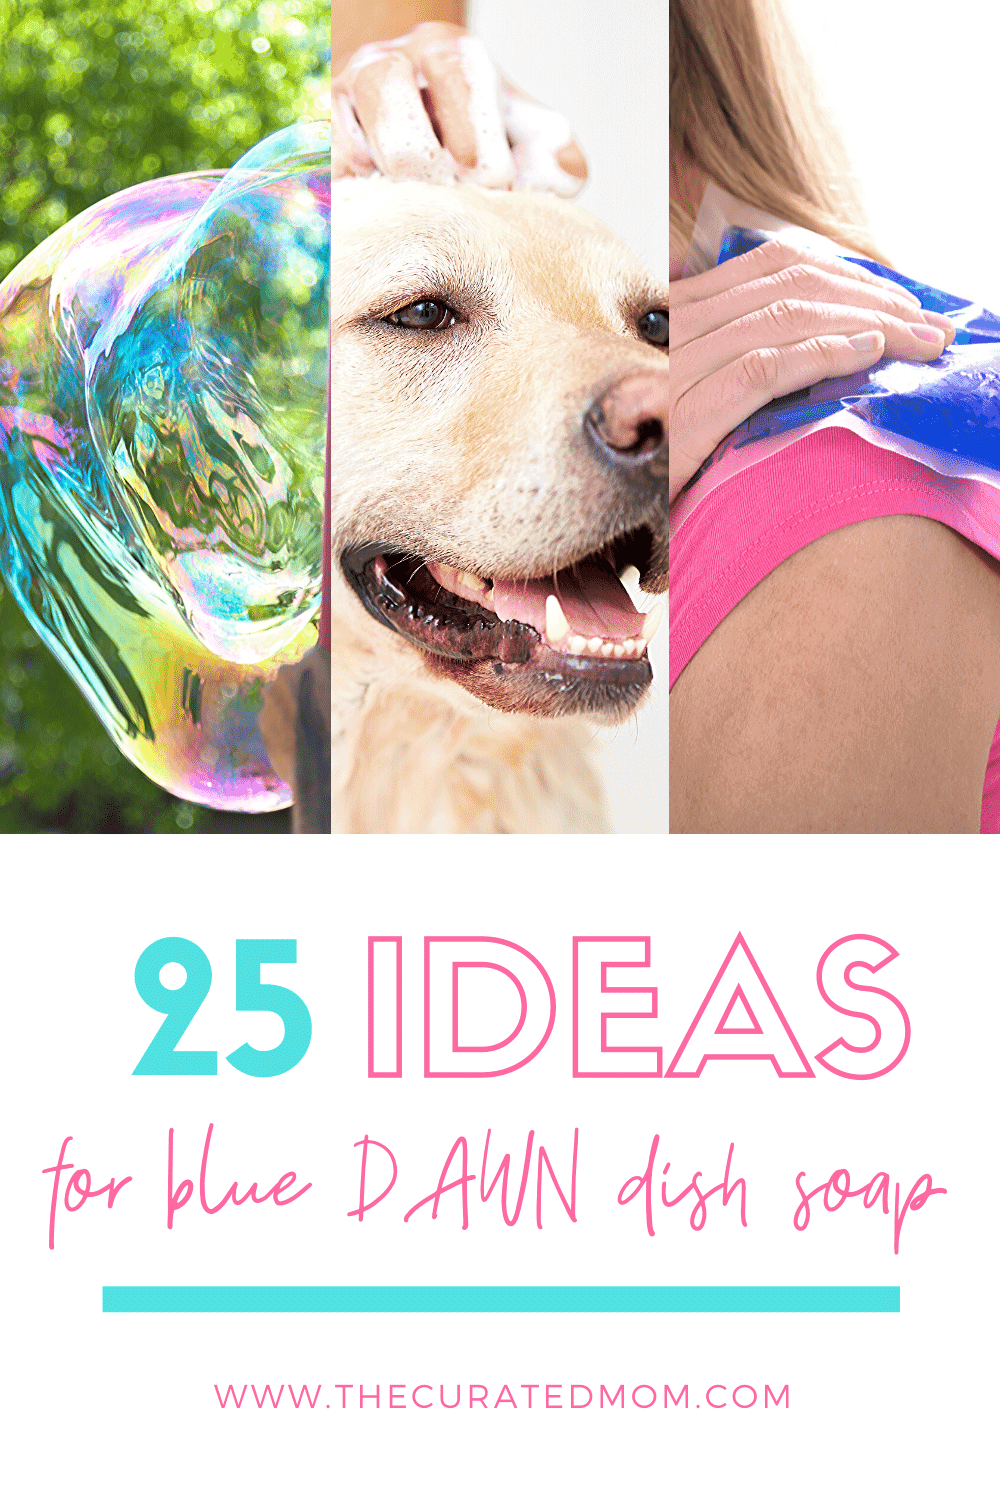 Bubbles, dog being shampooed, and woman with ice pack with text reading 25 ideas for blue dawn dish soap